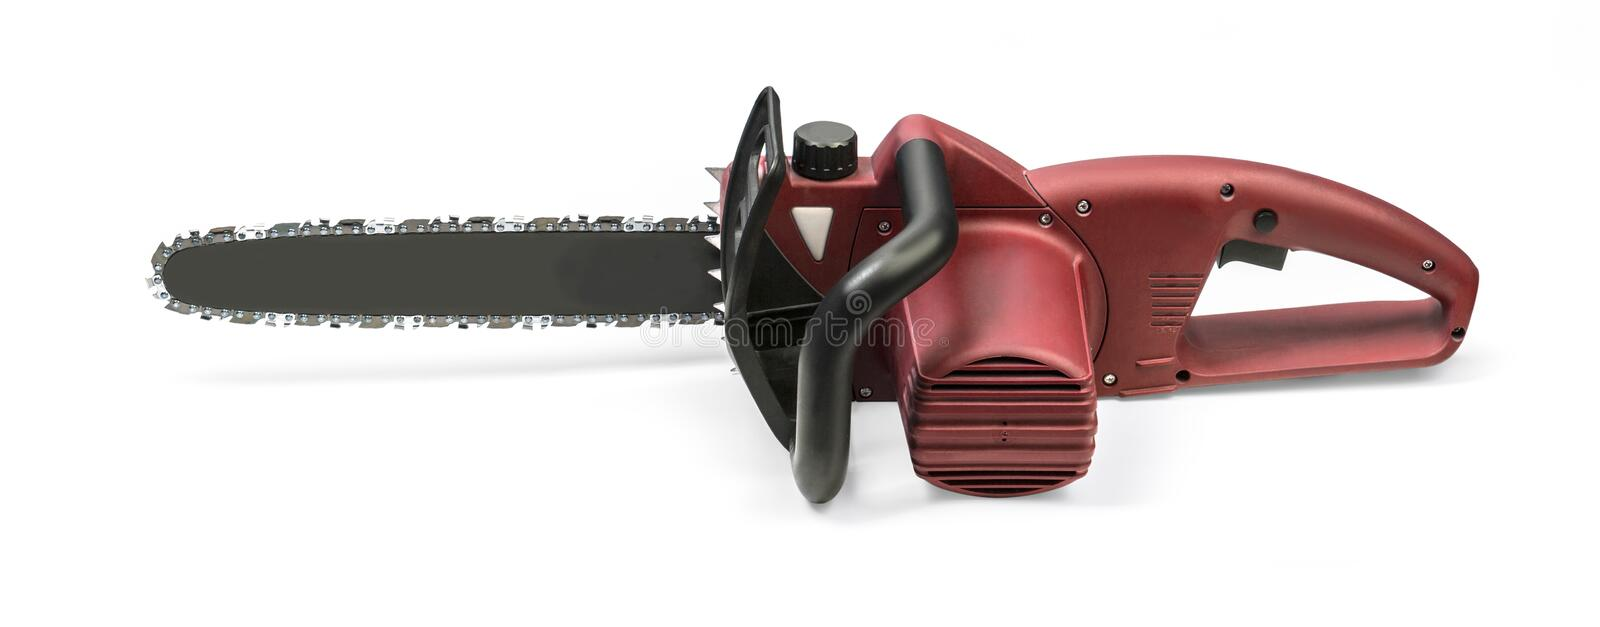 Chainsaw. on white. Background with clipping path royalty free stock photography